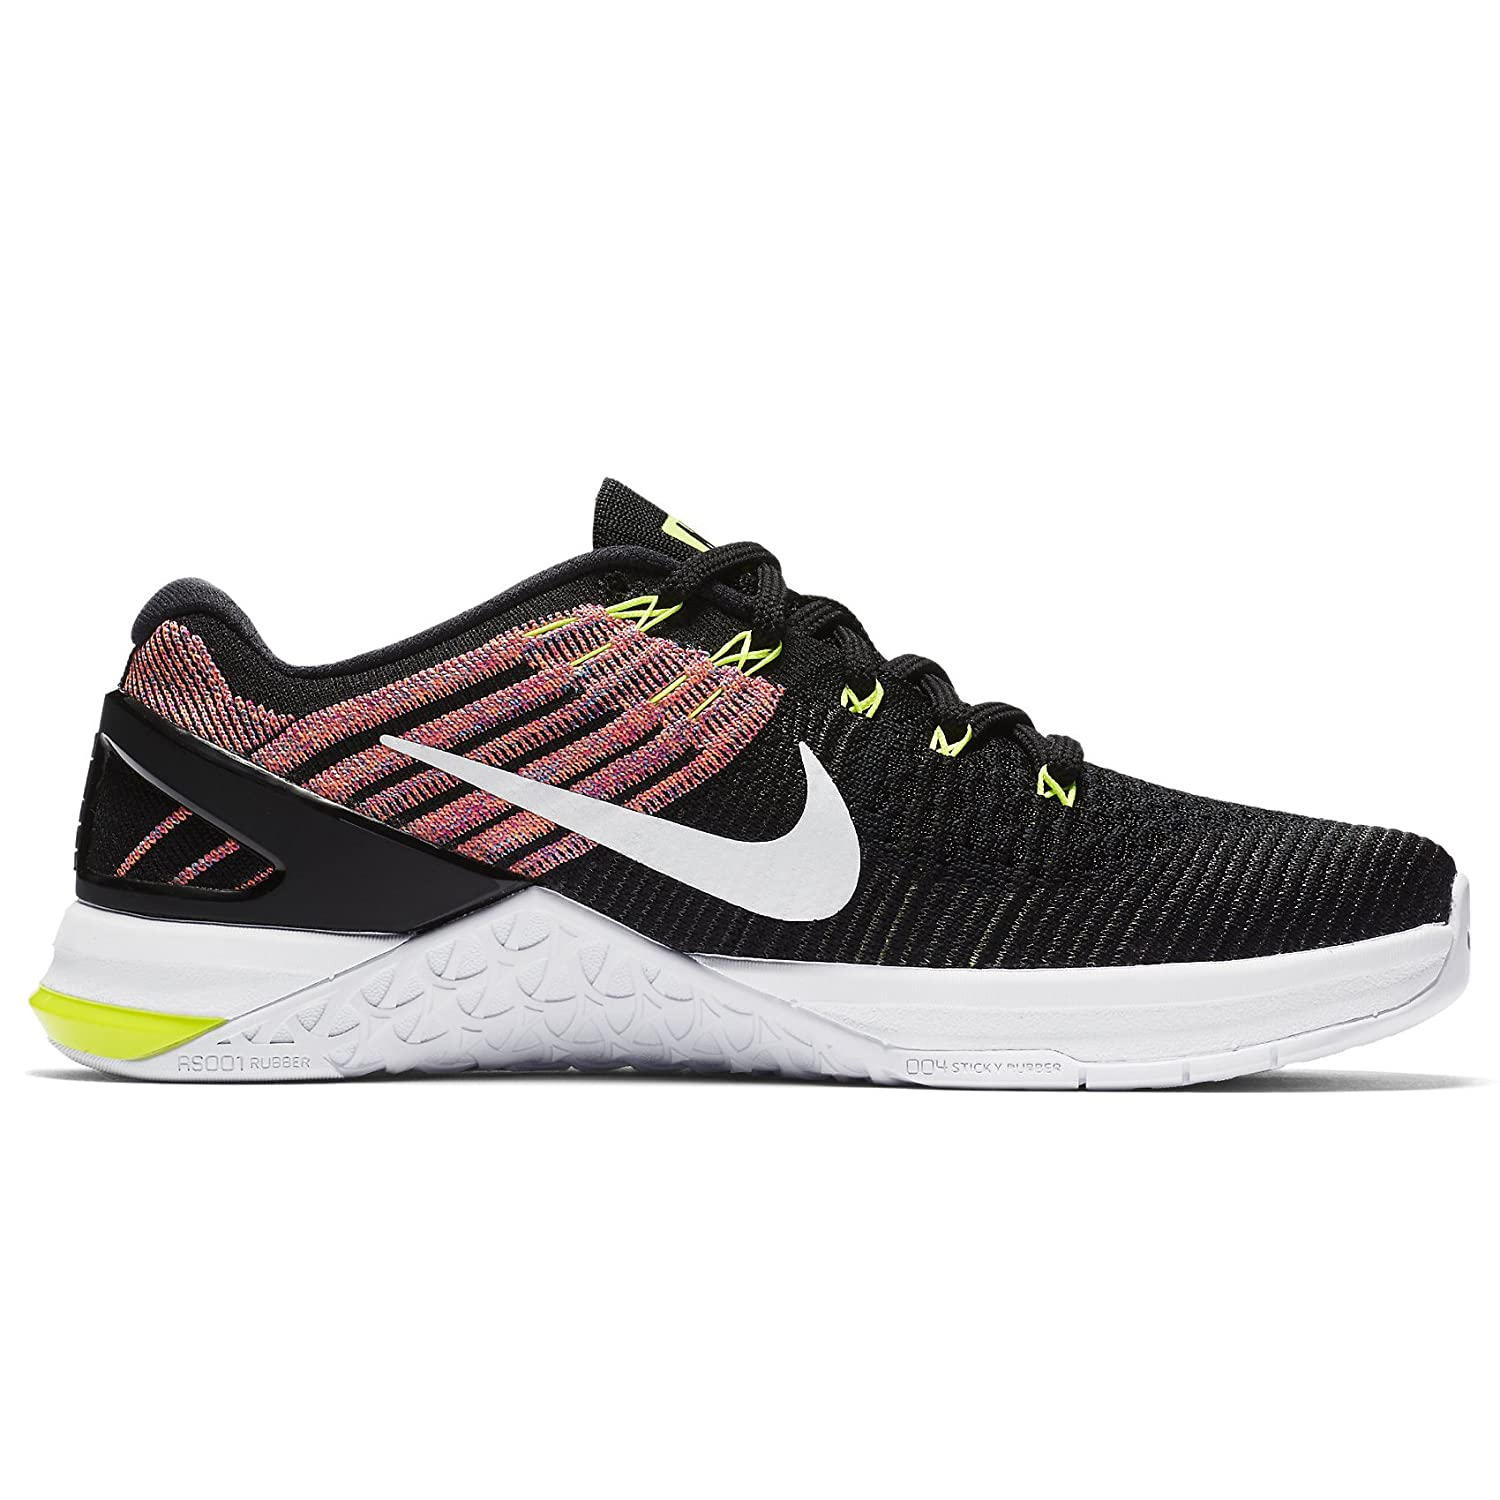 new style 5a598 80bb1 nike skor leopard